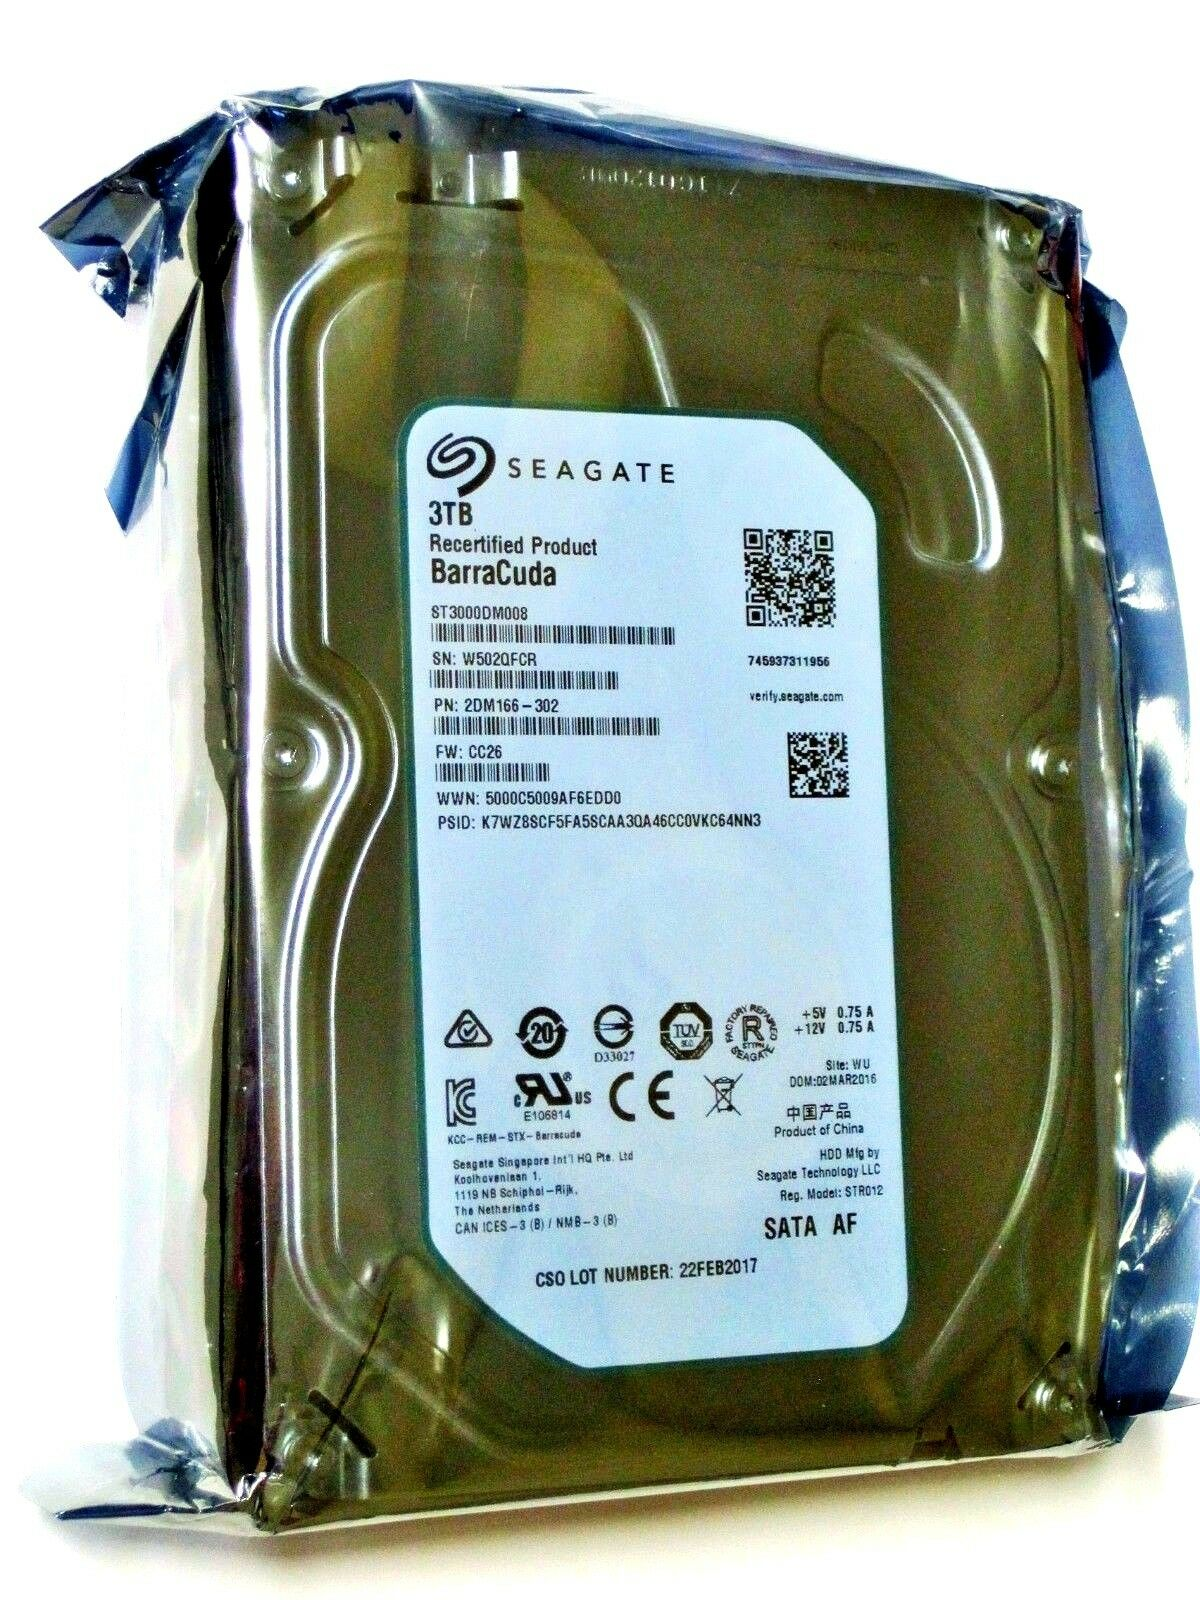 New Seagate Recertified 3tb St3000dm008 Barracuda Sata Iii 6gb S 35 Firecuda Inch 2tb Sshd 5 Years Warranty Hddssd For Pc Gaming 1 Of 3only 0 Available